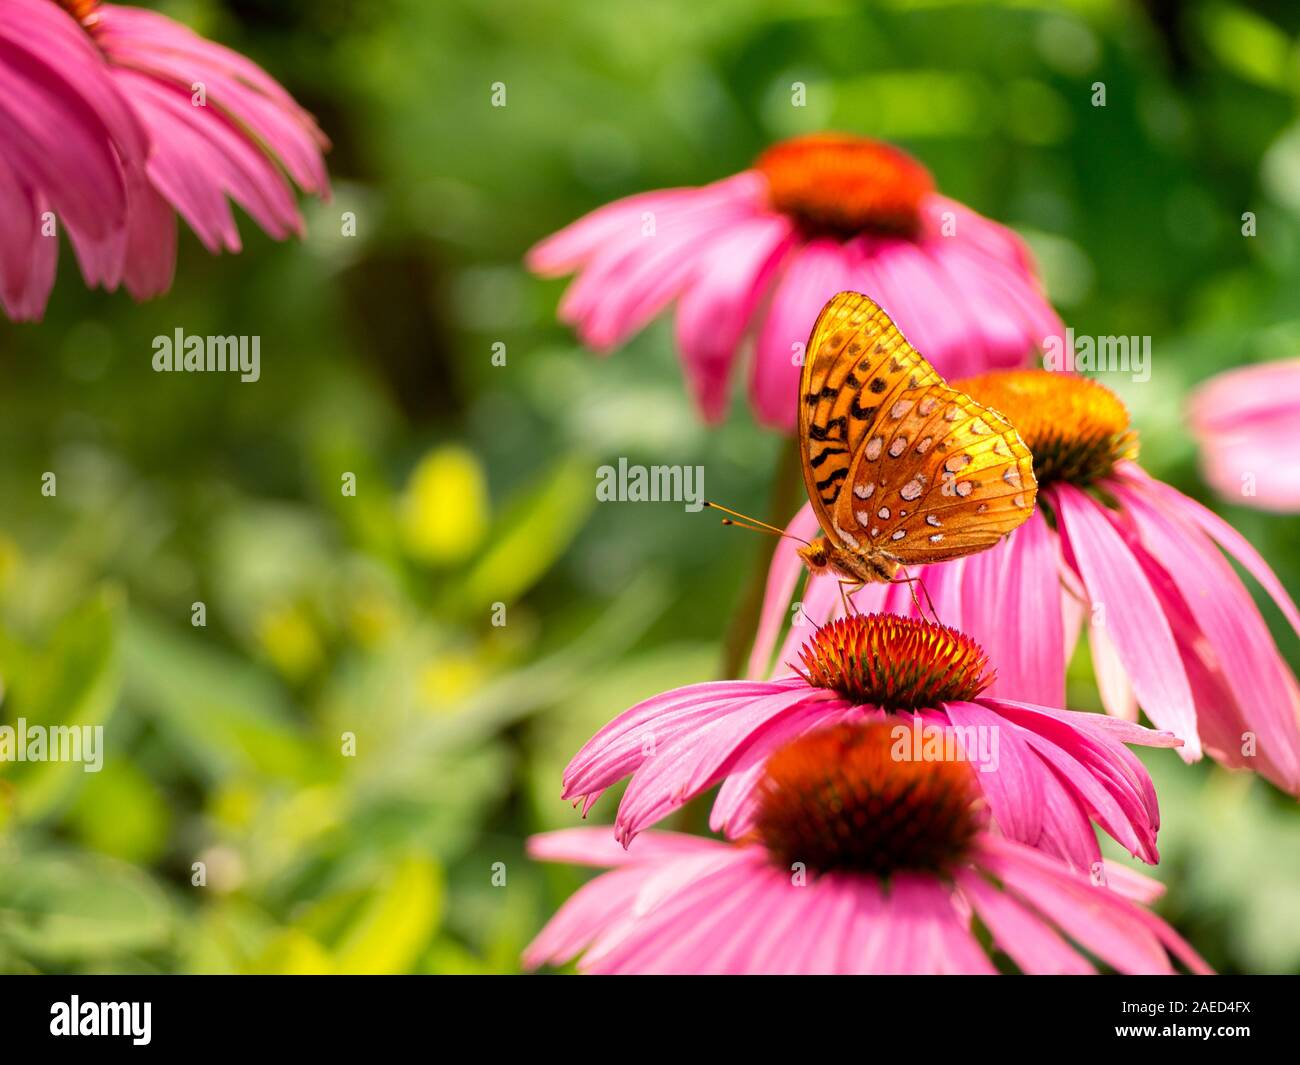 backlit-great-spangled-fritillary-butterfly-speyeria-cybele-aka-silverspots-pollinating-a-native-wildflower-a-purple-coneflower-echinacea-purpurea-2AED4FX.jpg